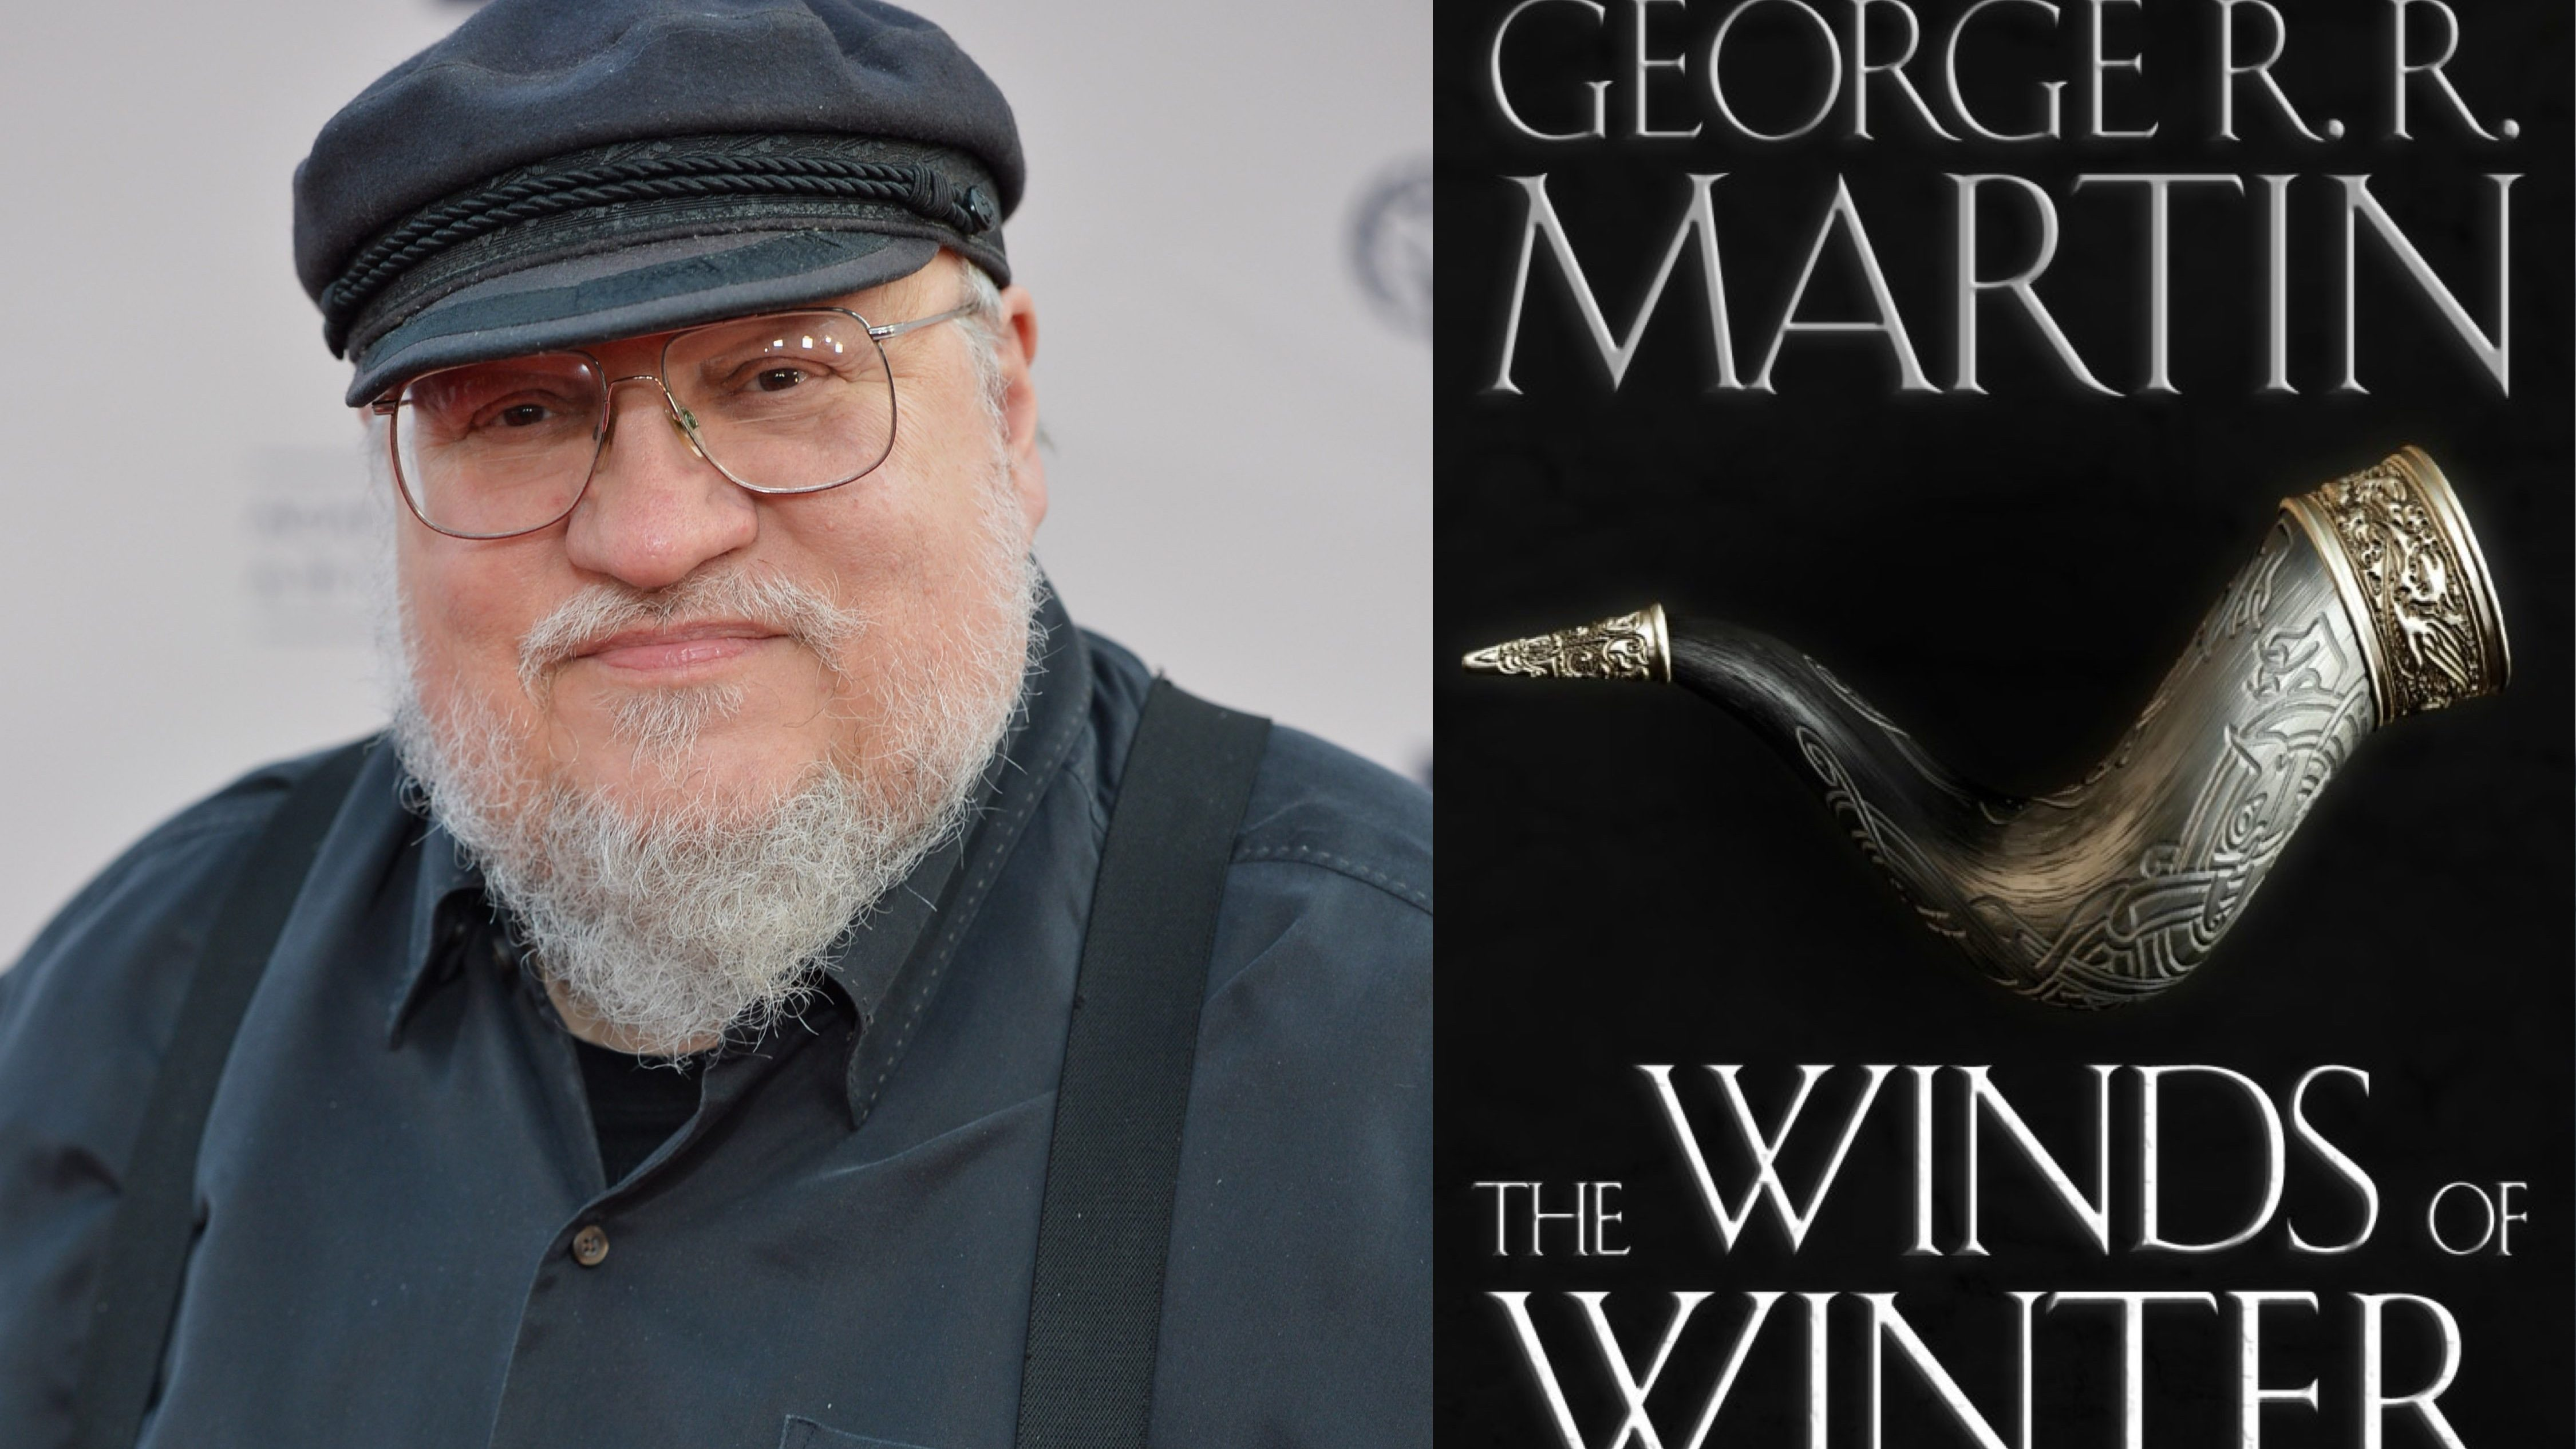 George RR Martin winds of winter release date update Game of Thrones books